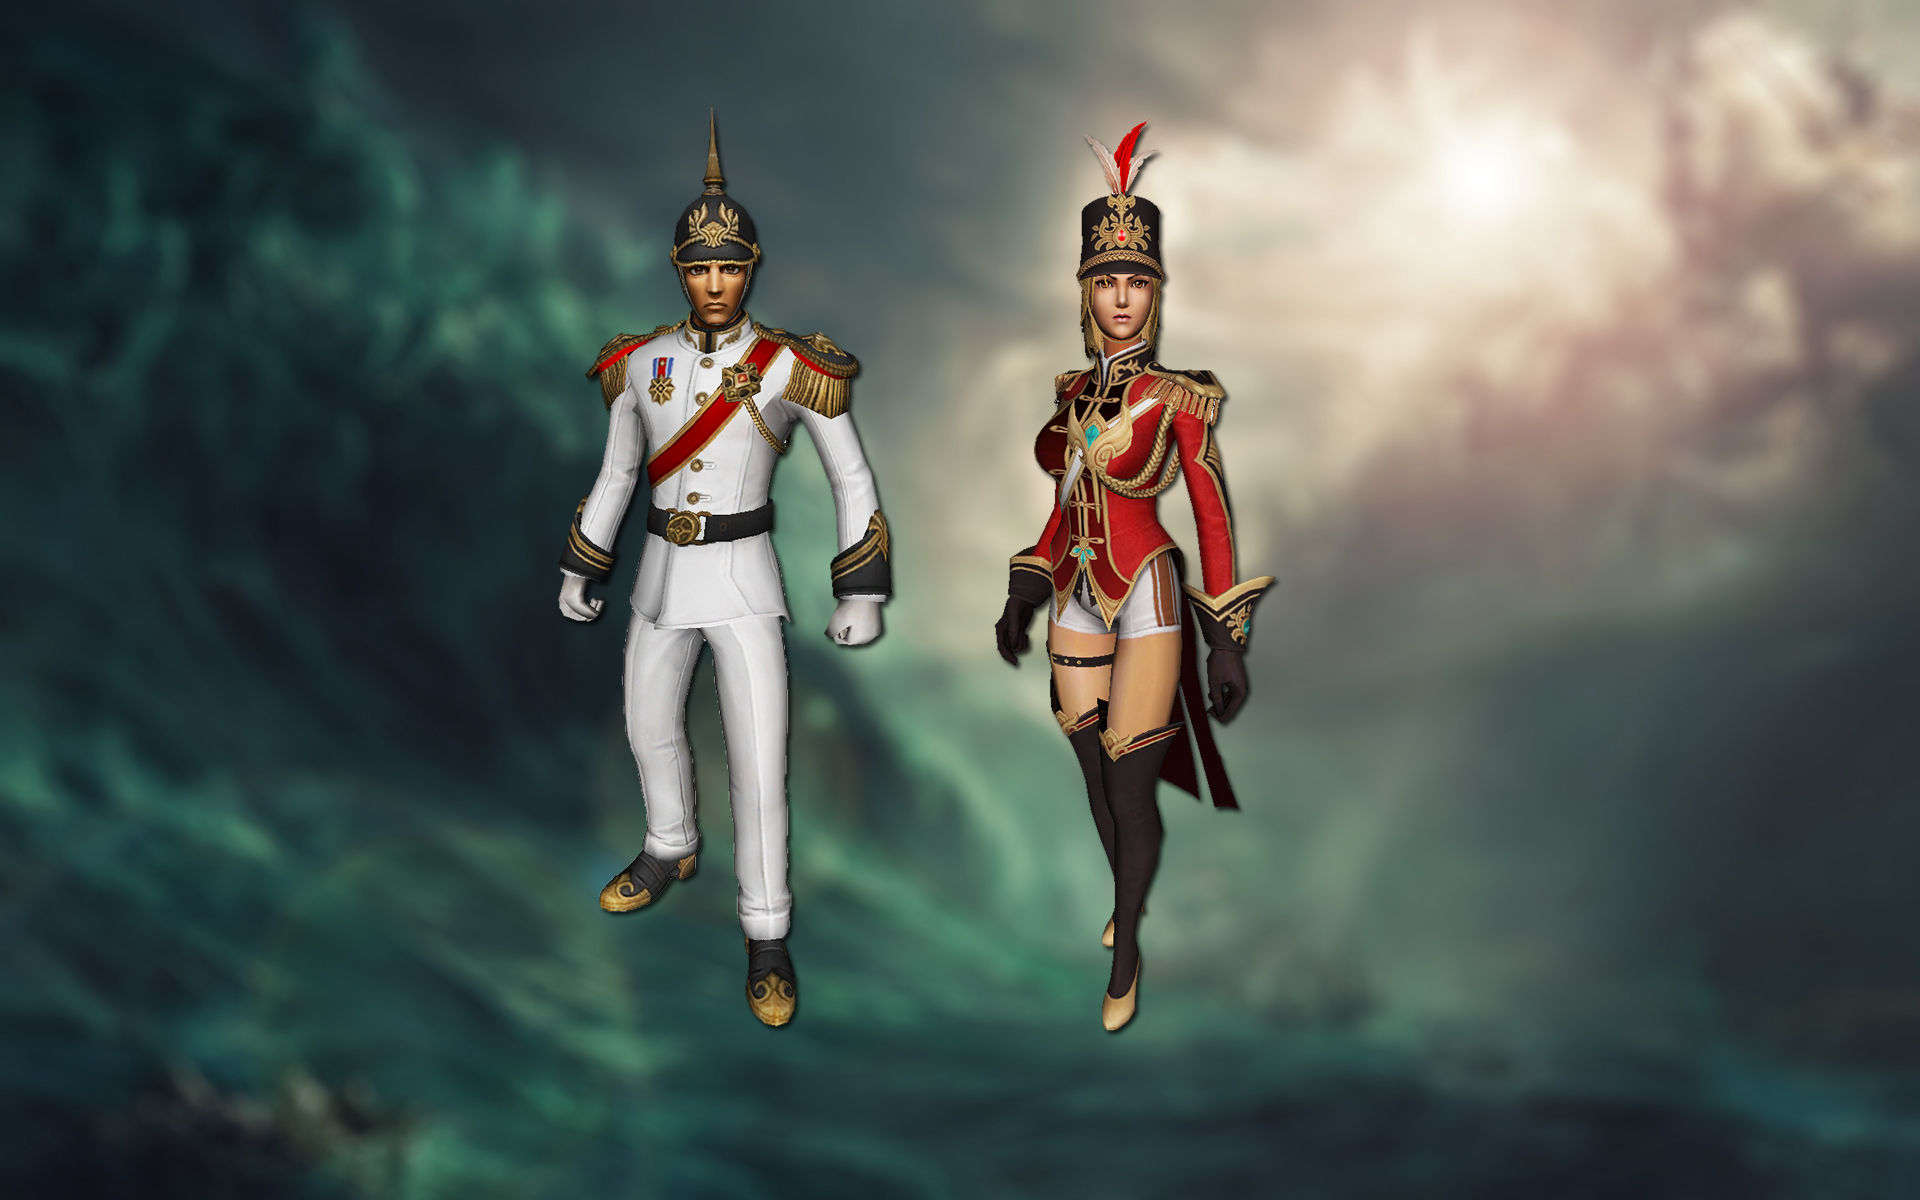 [FREE]Admiral costumes